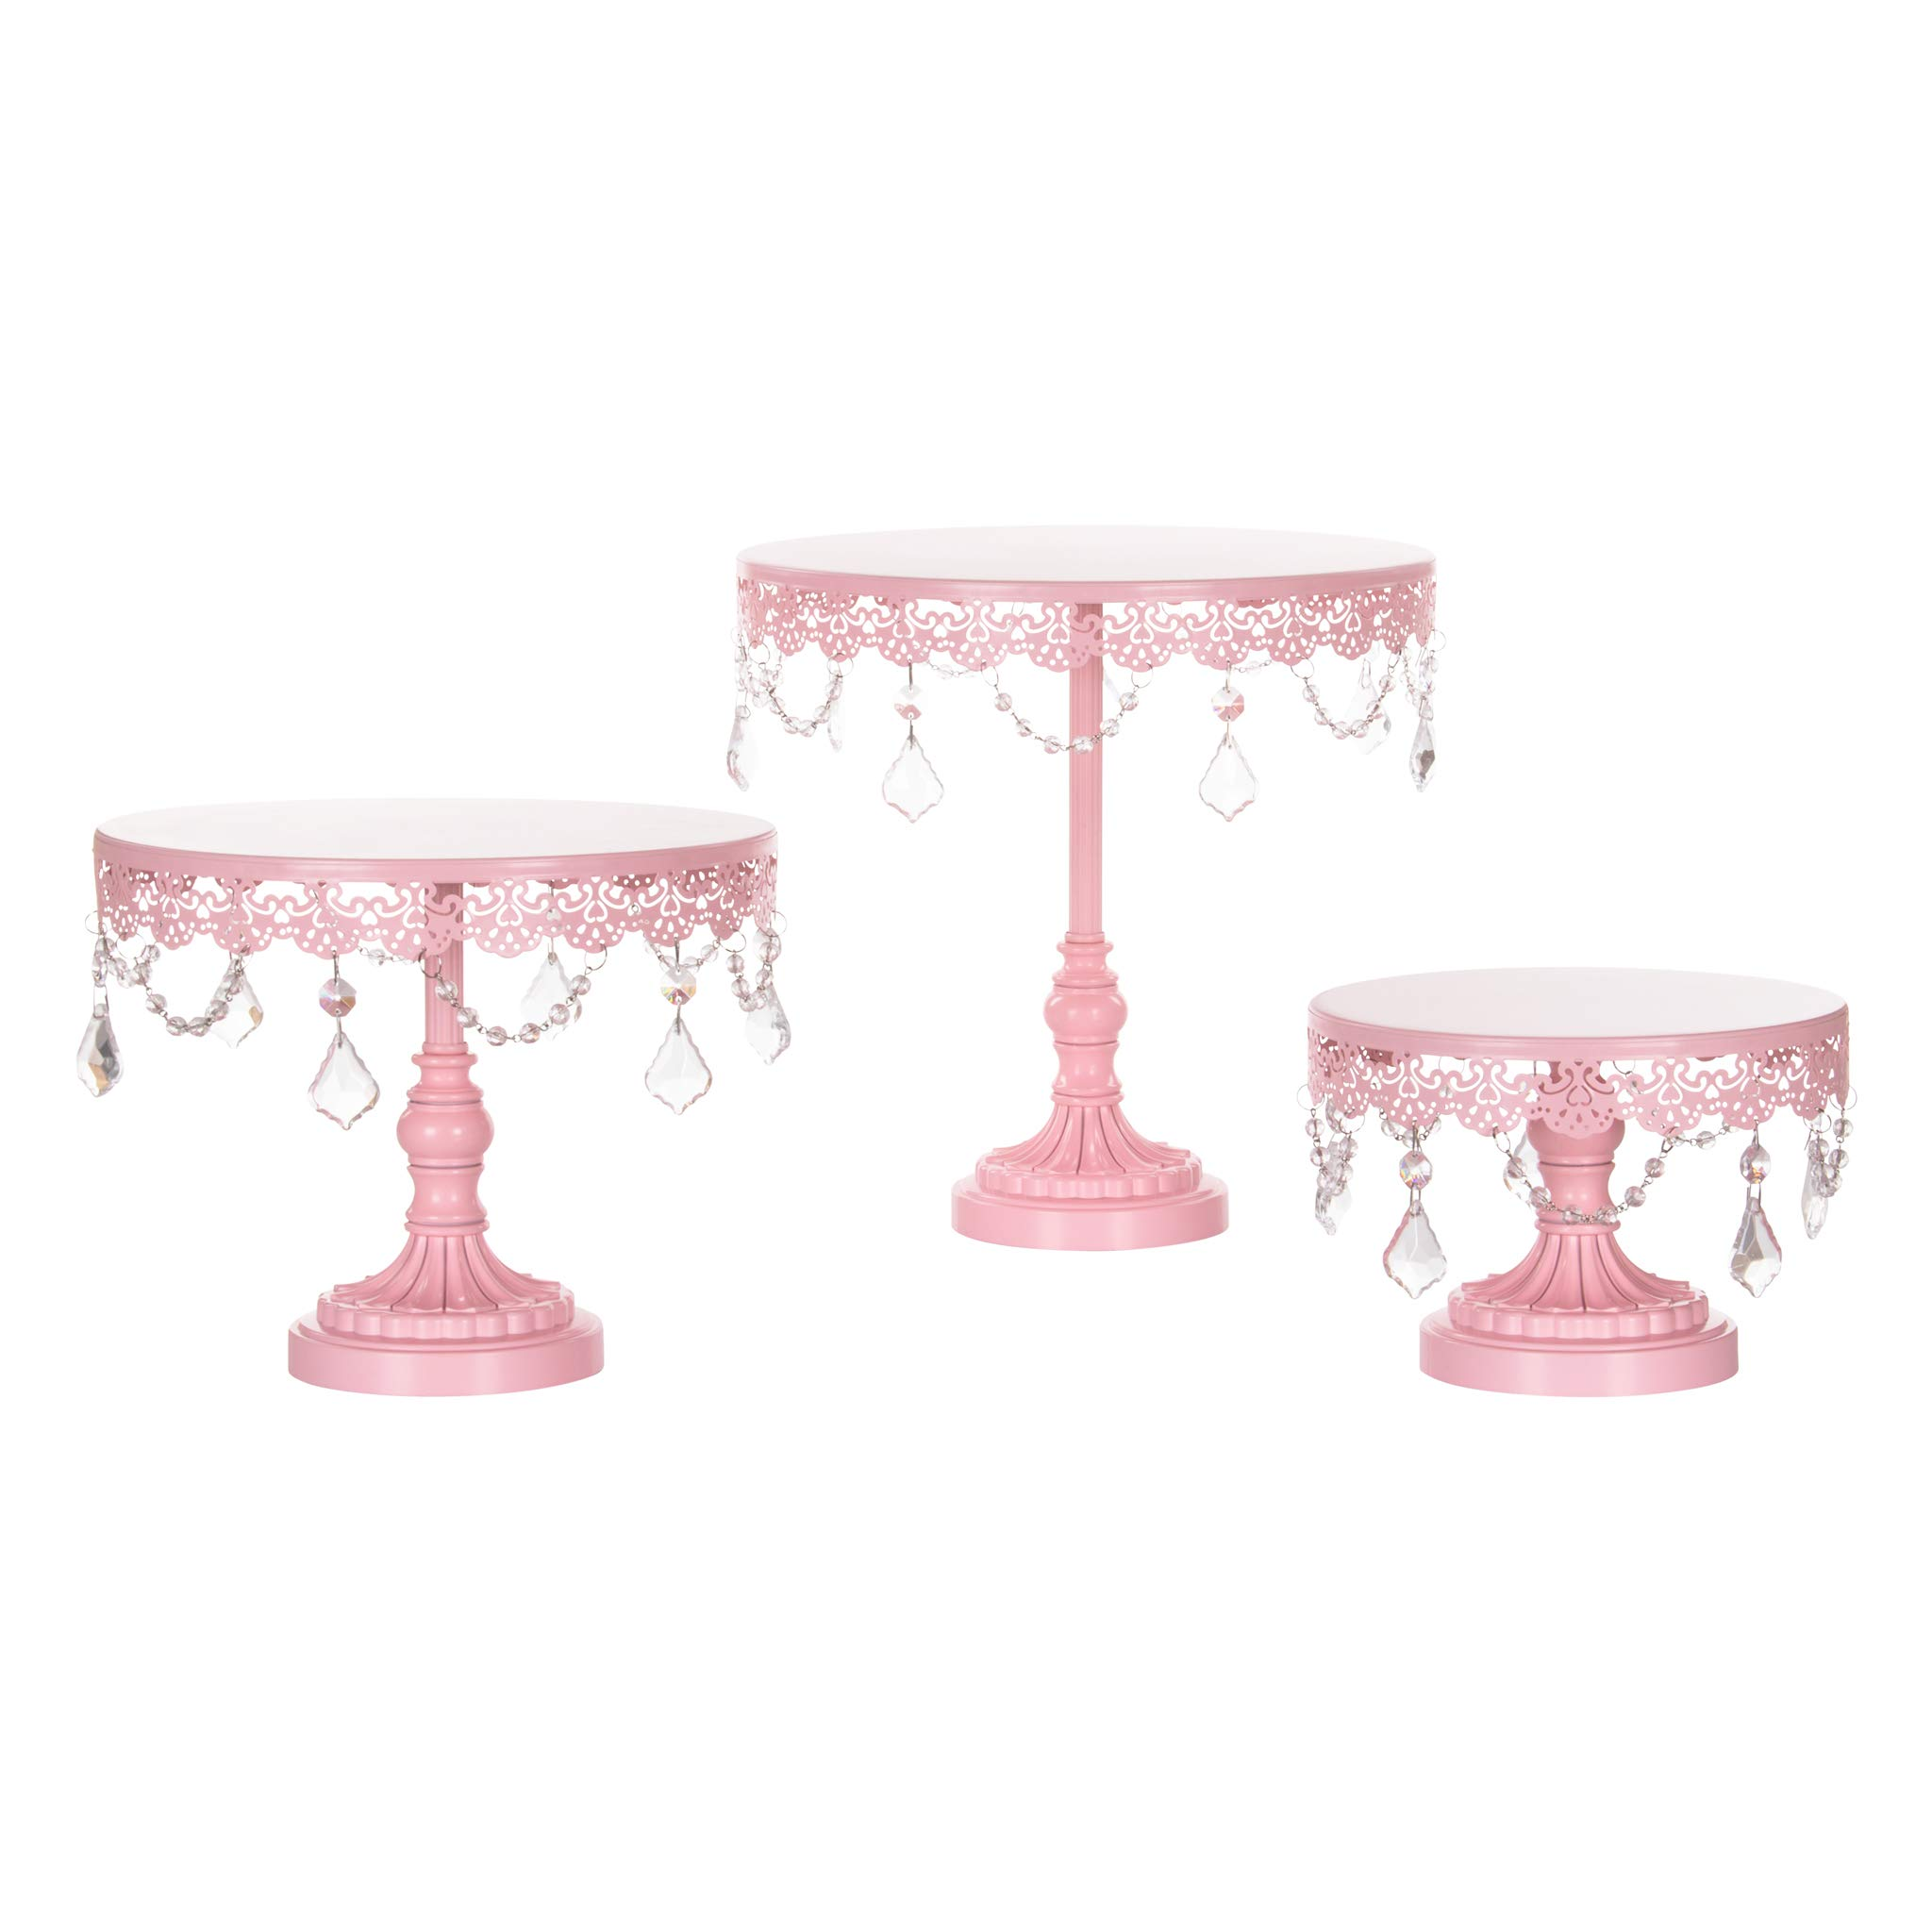 Amalfi Decor Cake Stand Set of 3 Pack, Dessert Cupcake Pastry Candy Display Plate for Wedding Event Birthday Party, Round Metal Pedestal Holder with Crystals, Pink by Amalfi Décor